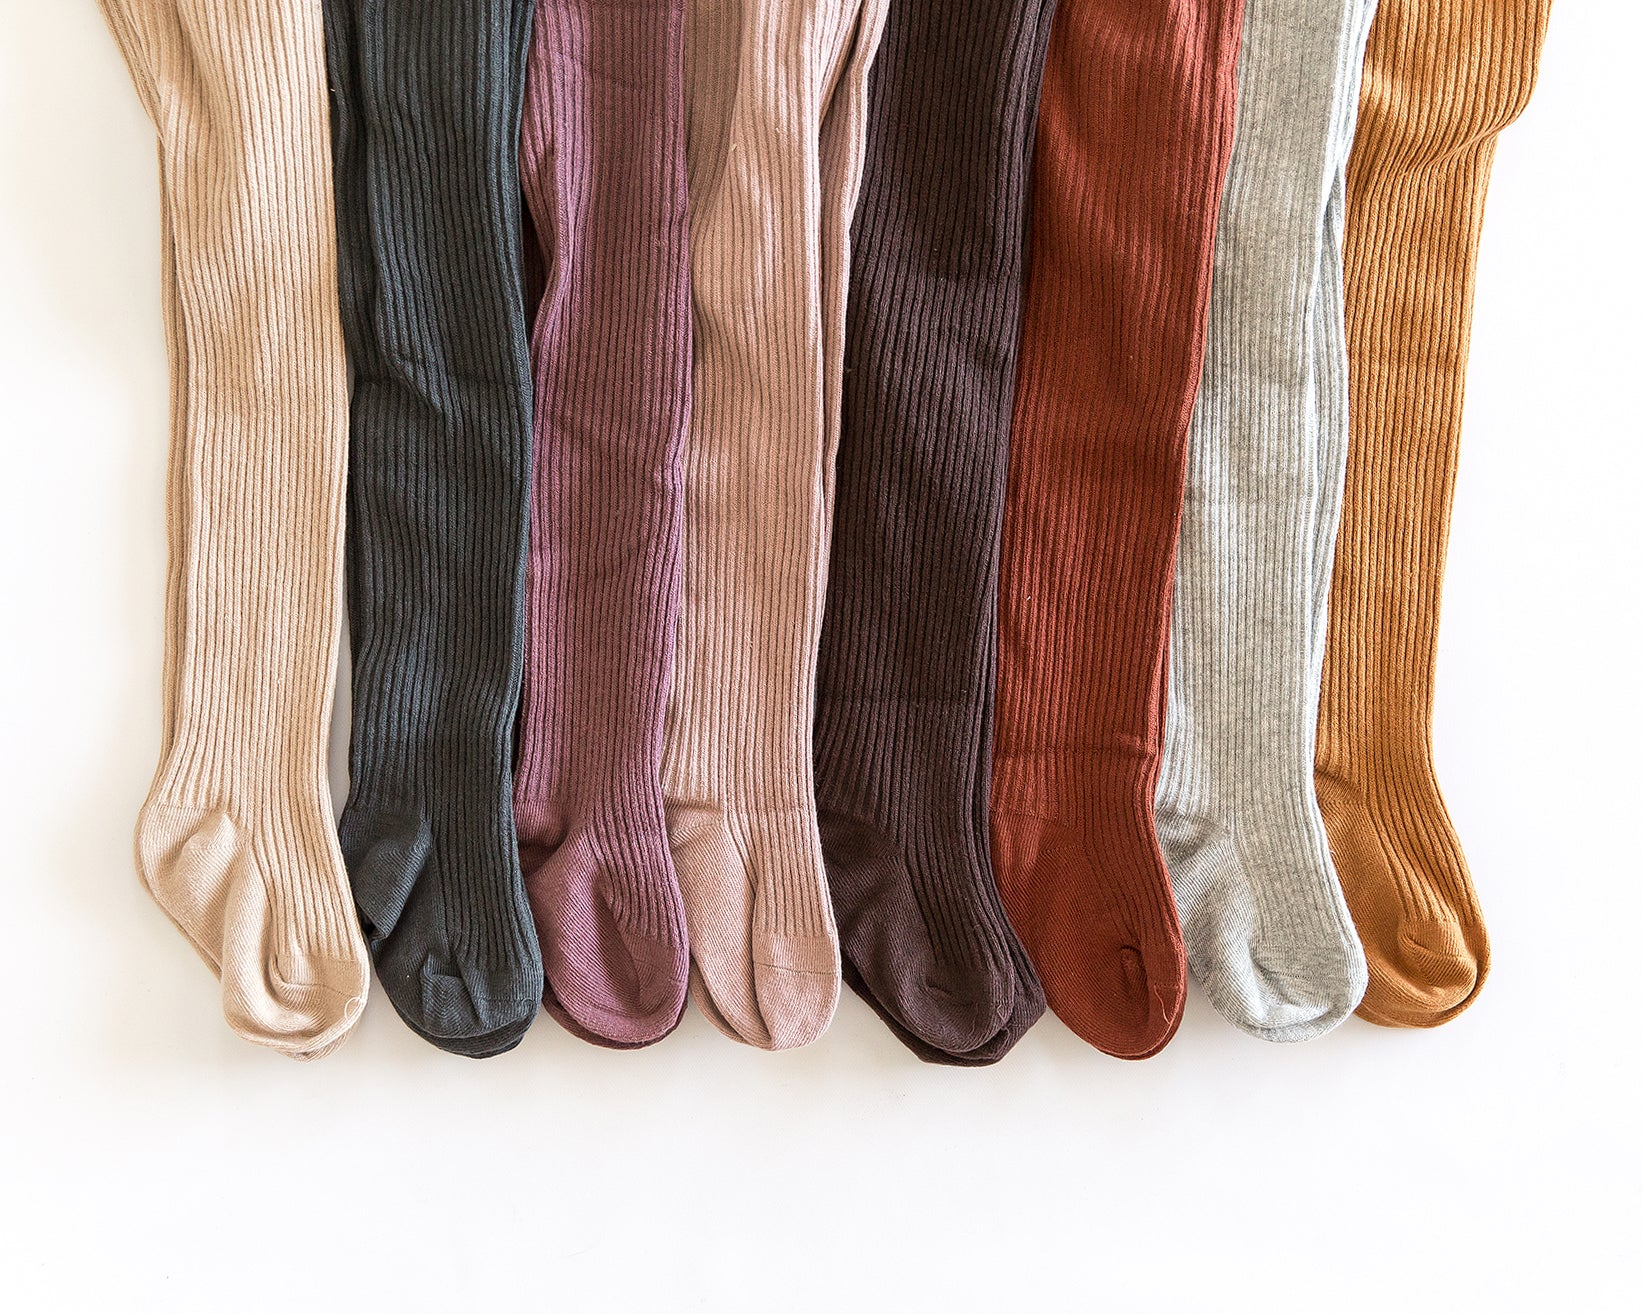 Ribbed Knit Tights in Autumn Orange - Reverie Threads